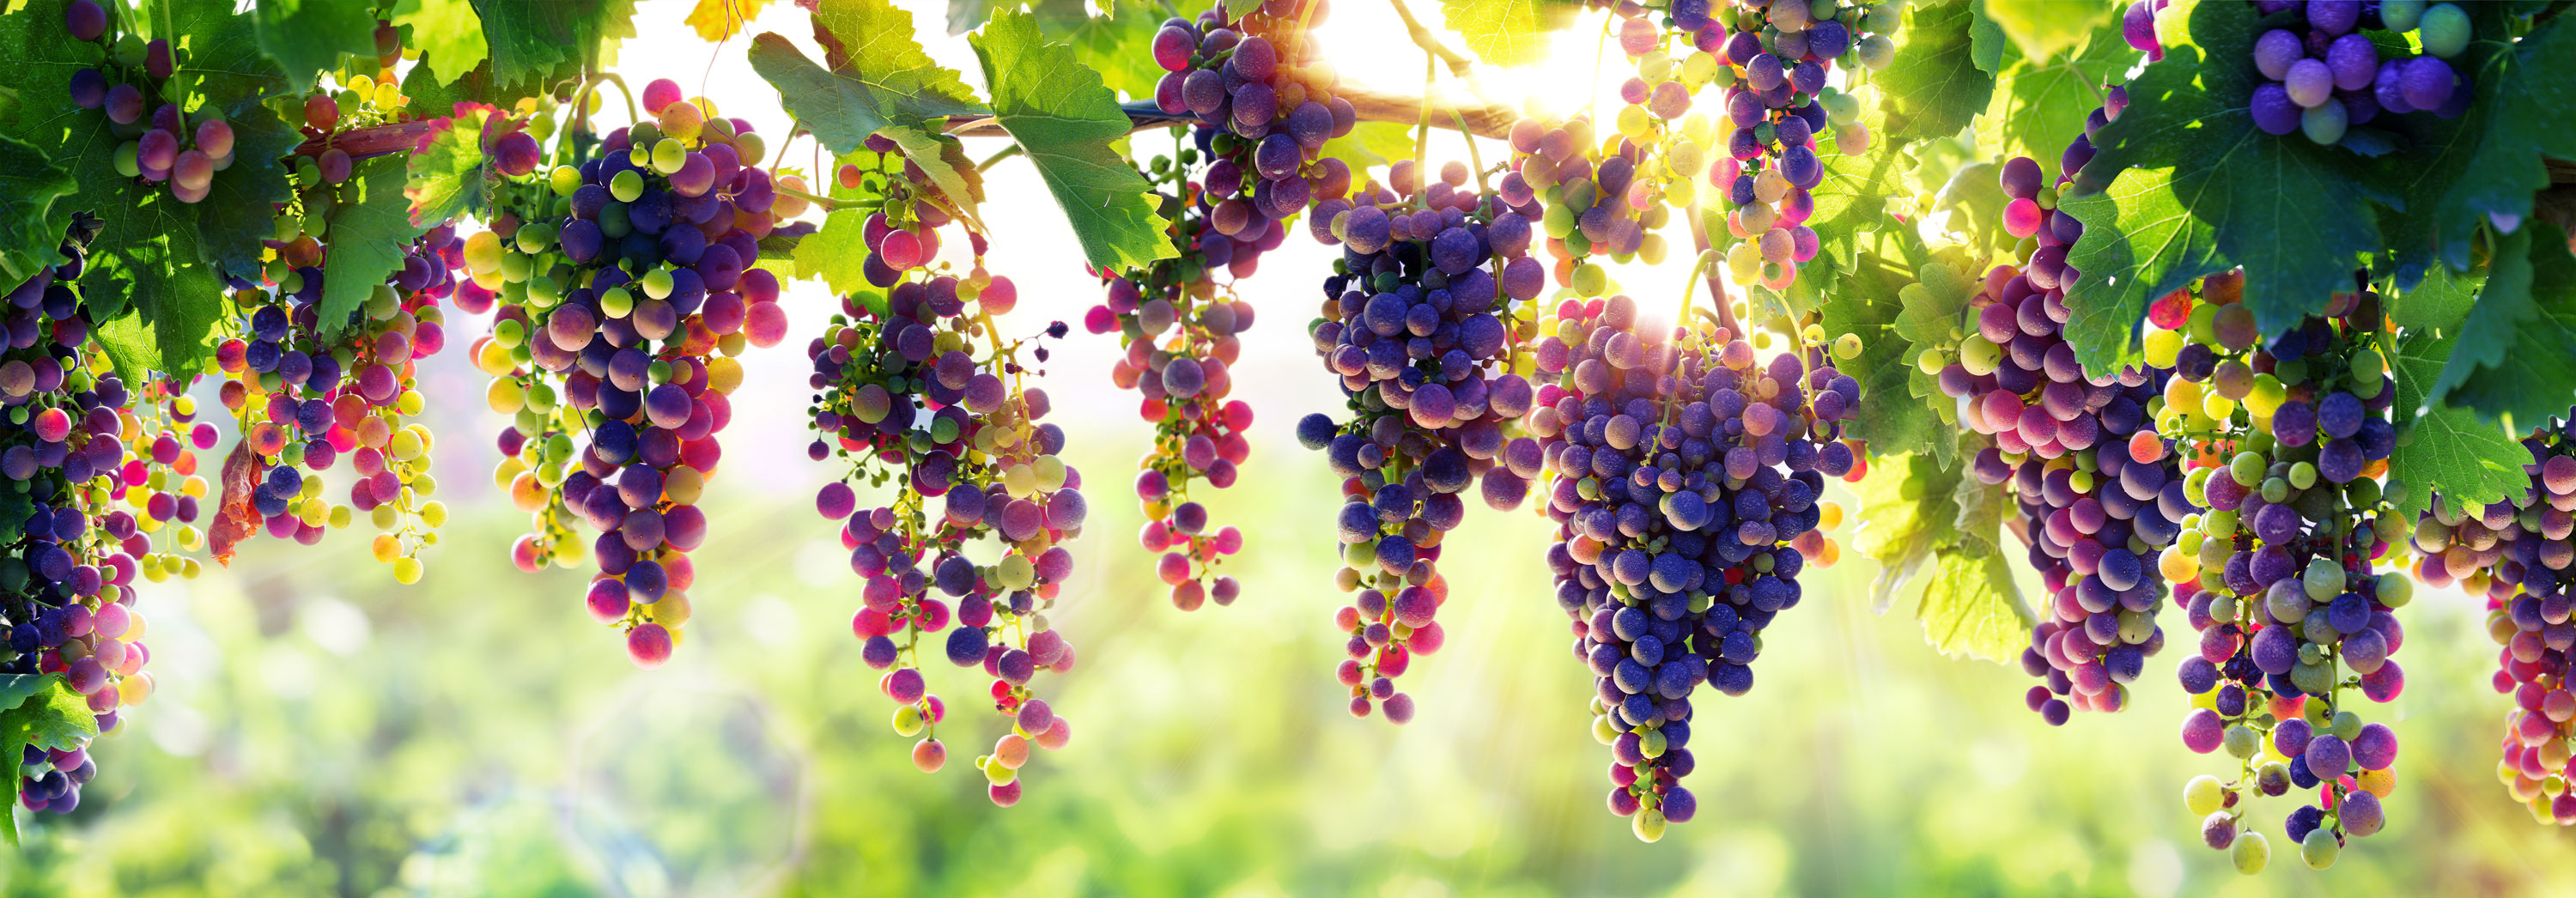 Purple grapes hanging from vines with sun peeking through